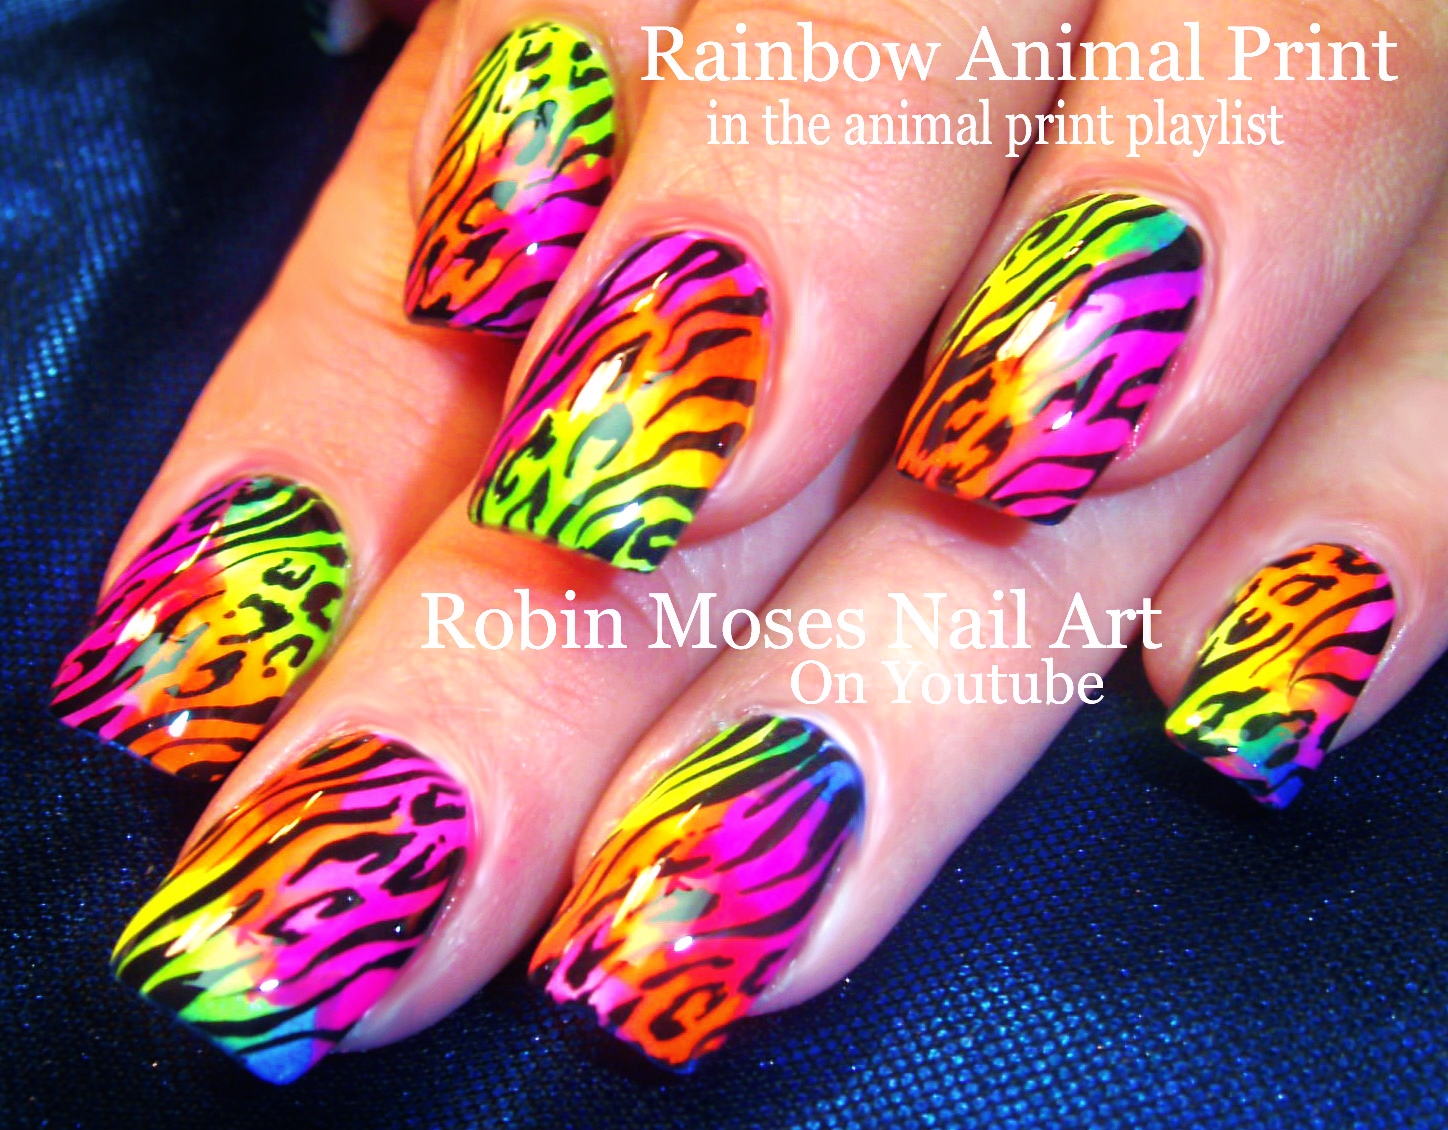 Robin moses nail art lime green nails with rainbow animal print cool nails animal print playlist easy nail art tutorials diy zebra leopard tiger designs prints prinsesfo Image collections